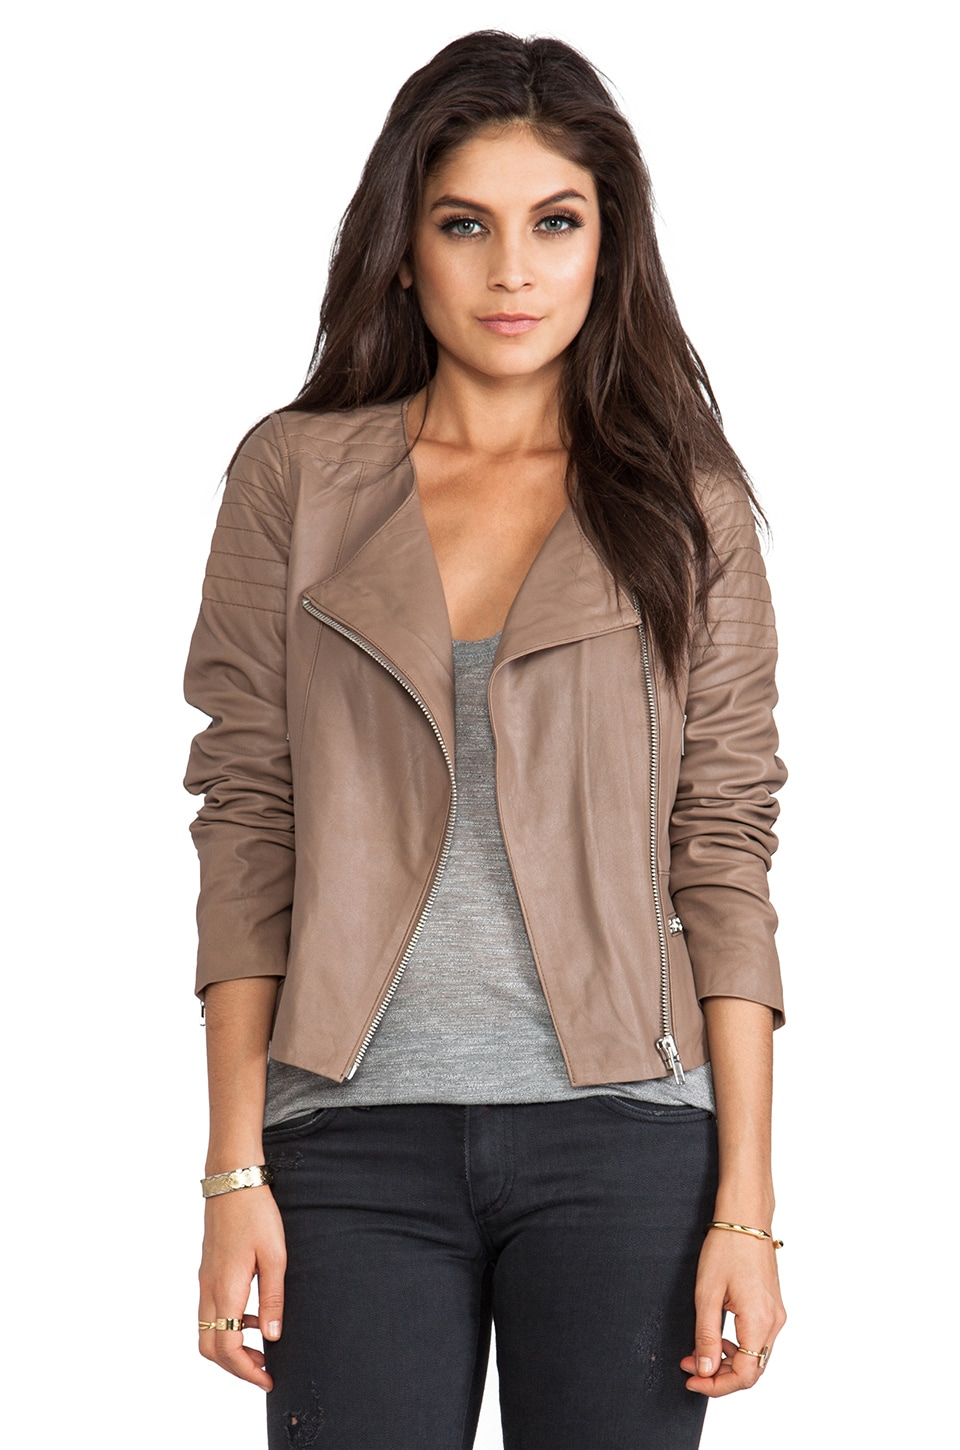 BB Dakota Dolorosa Lamb Leather Jacket in Tan